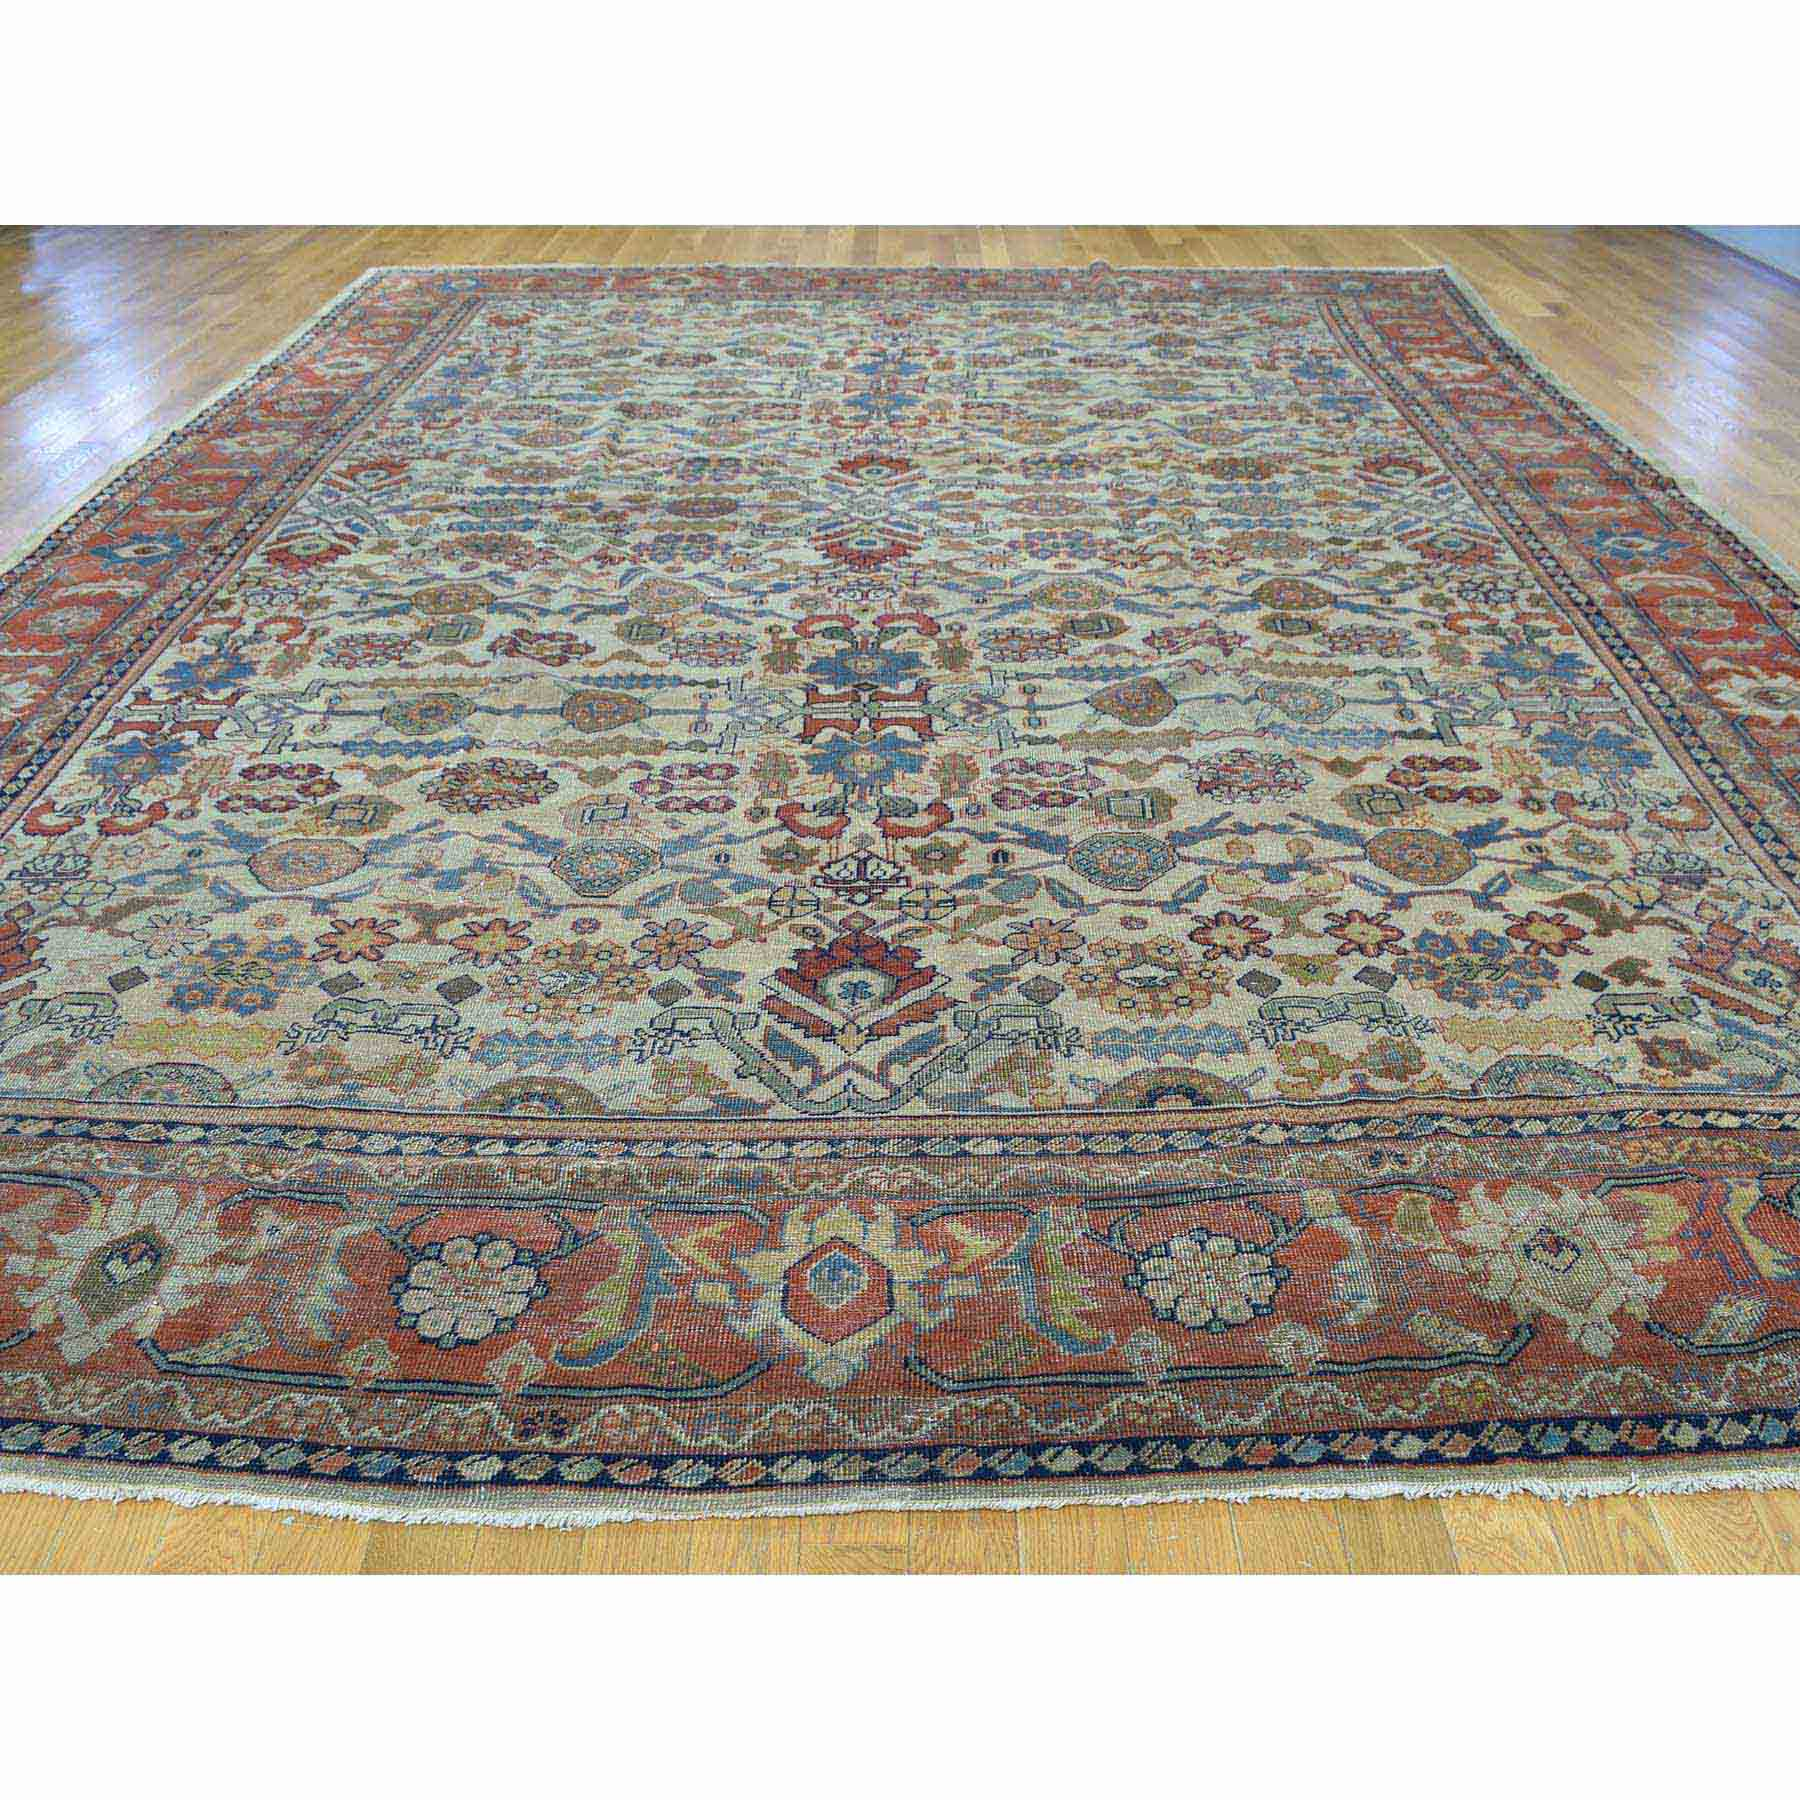 Antique-Hand-Knotted-Rug-173955